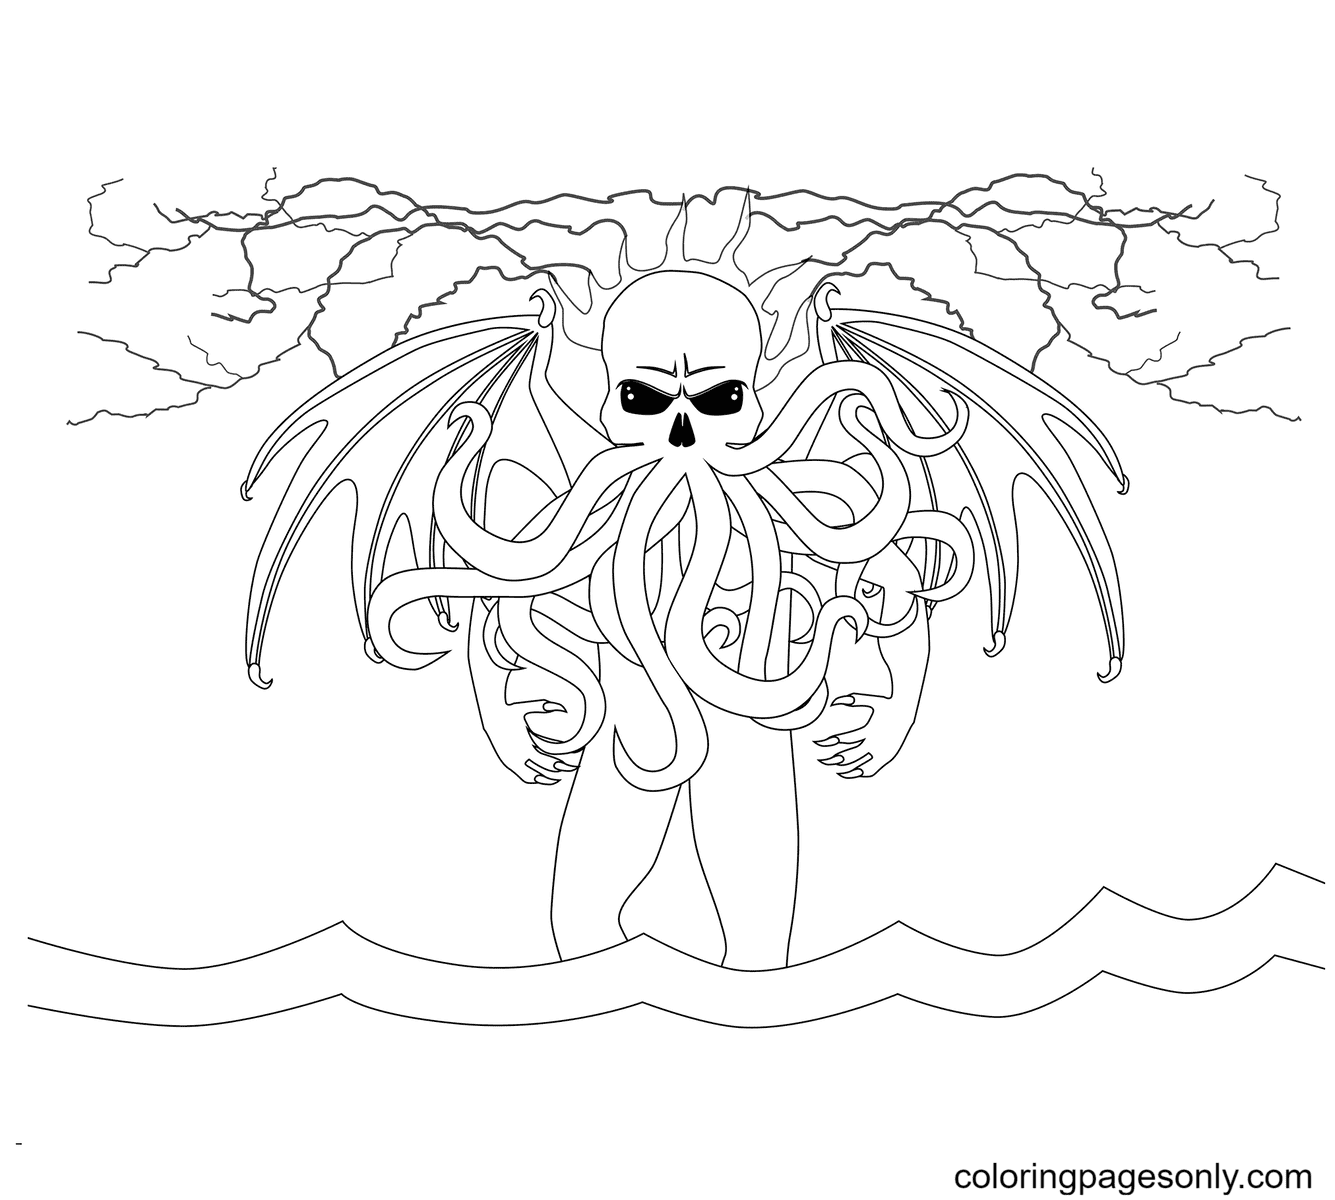 Cthulhu Coloring Page